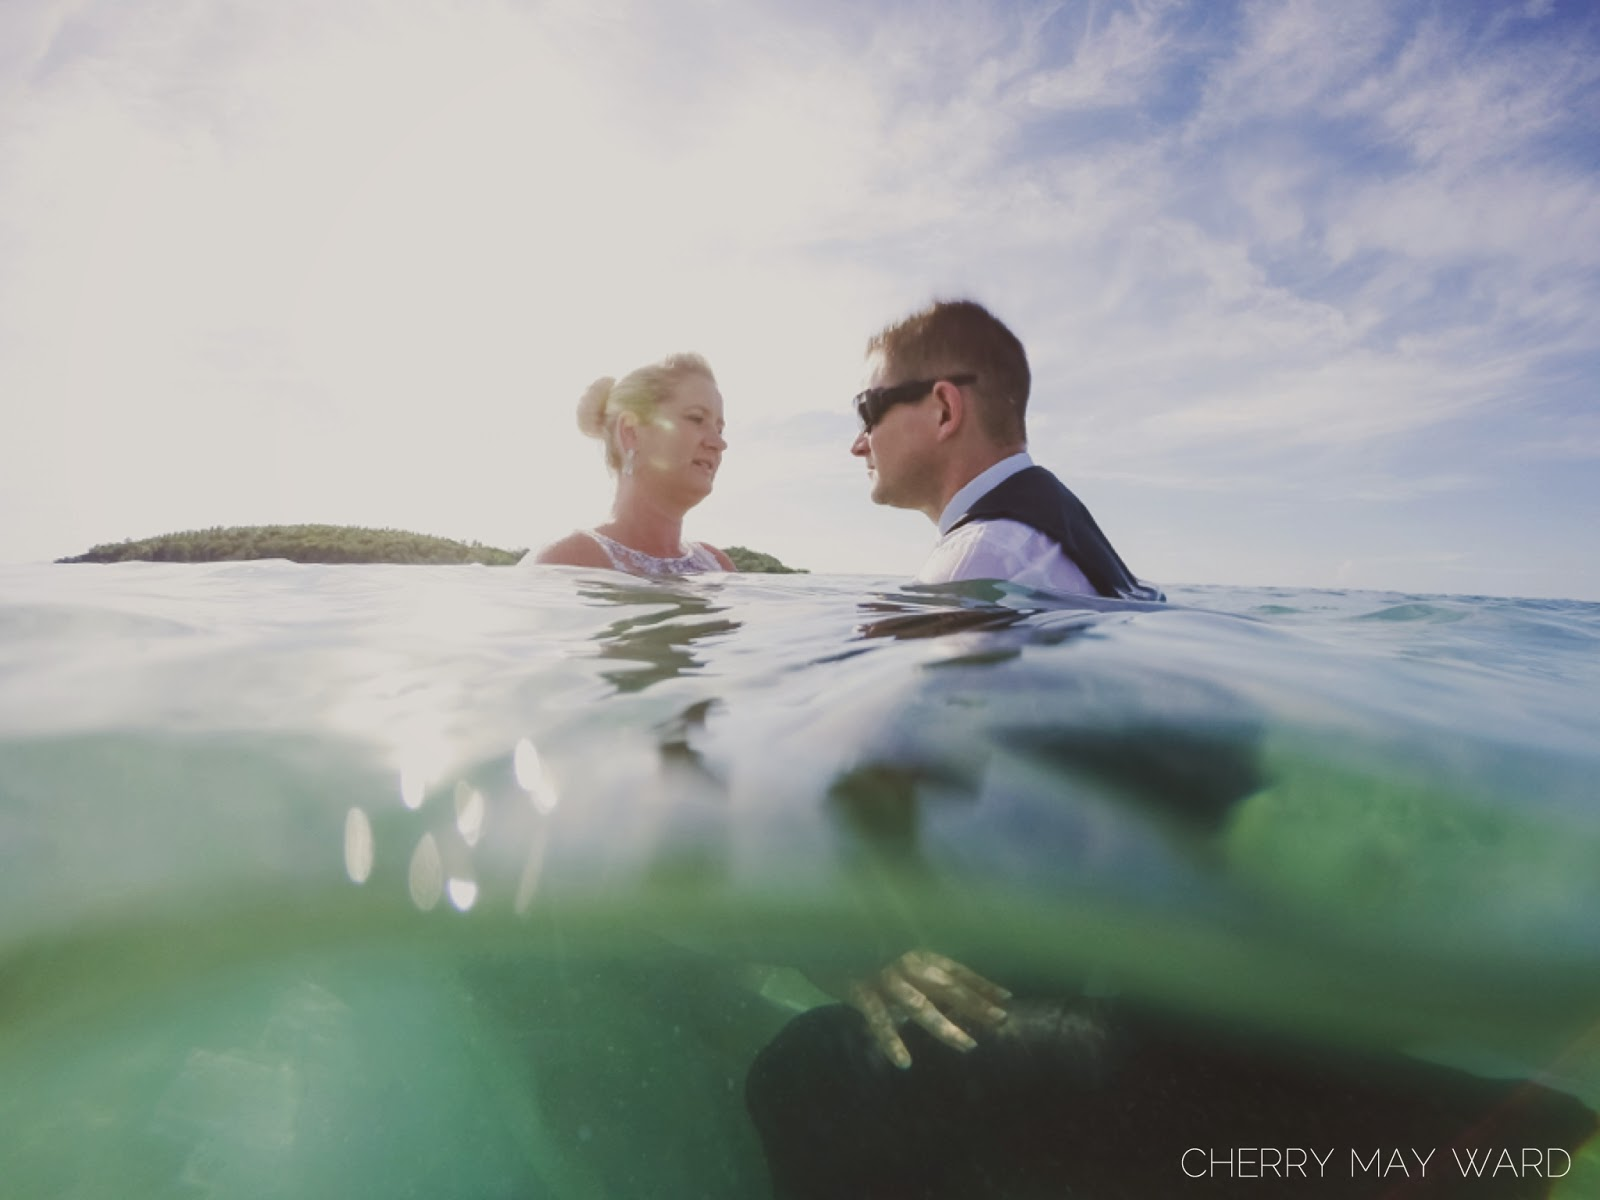 bride and groom photos half underwater, photograph of wedding couple half underwater, trash the dress, underwater photos of wedding dress, Koh Samui wedding underwater